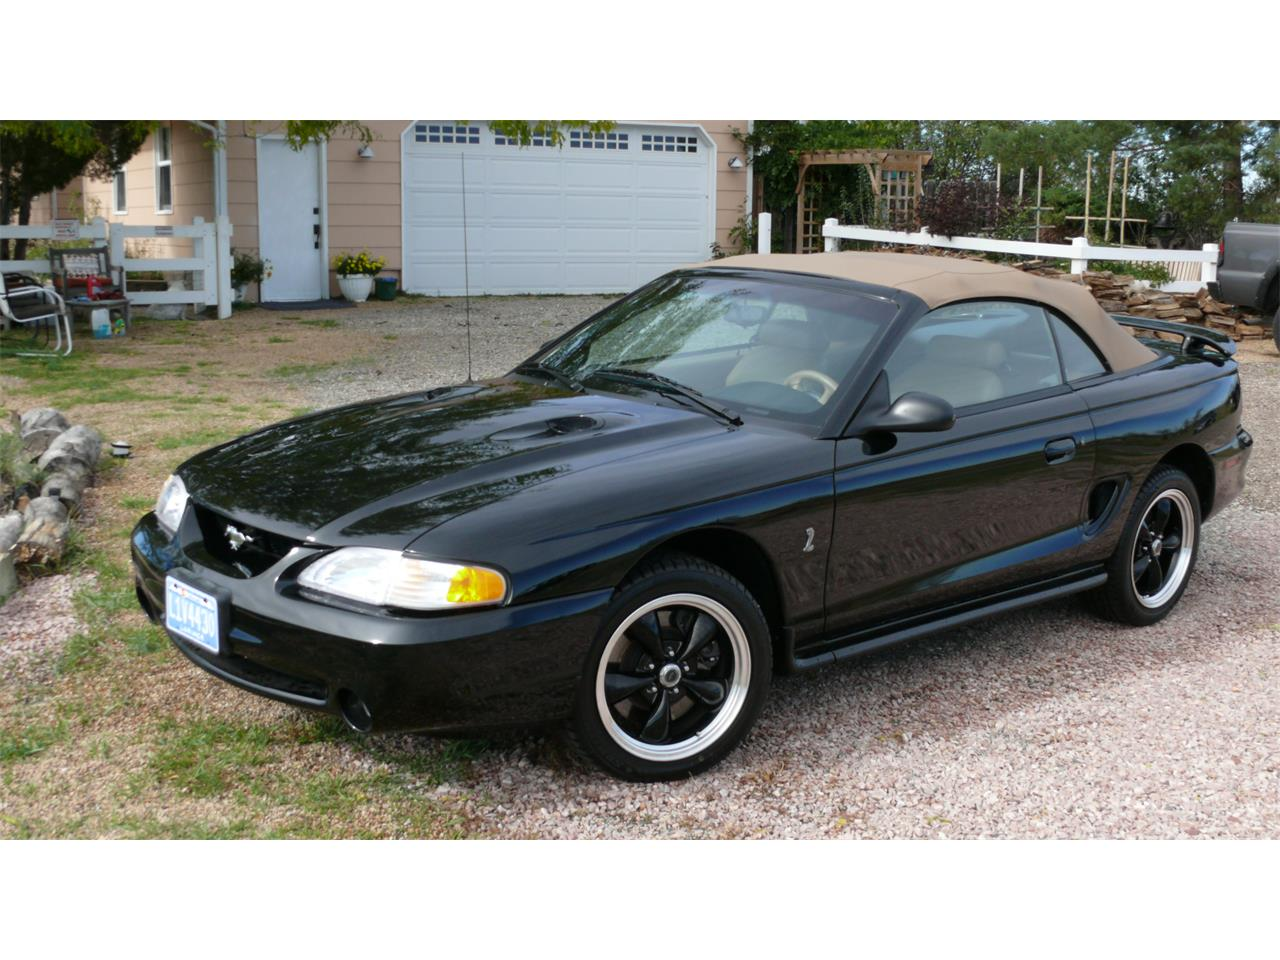 Large picture of 1997 ford mustang cobra offered by a private seller m3dx